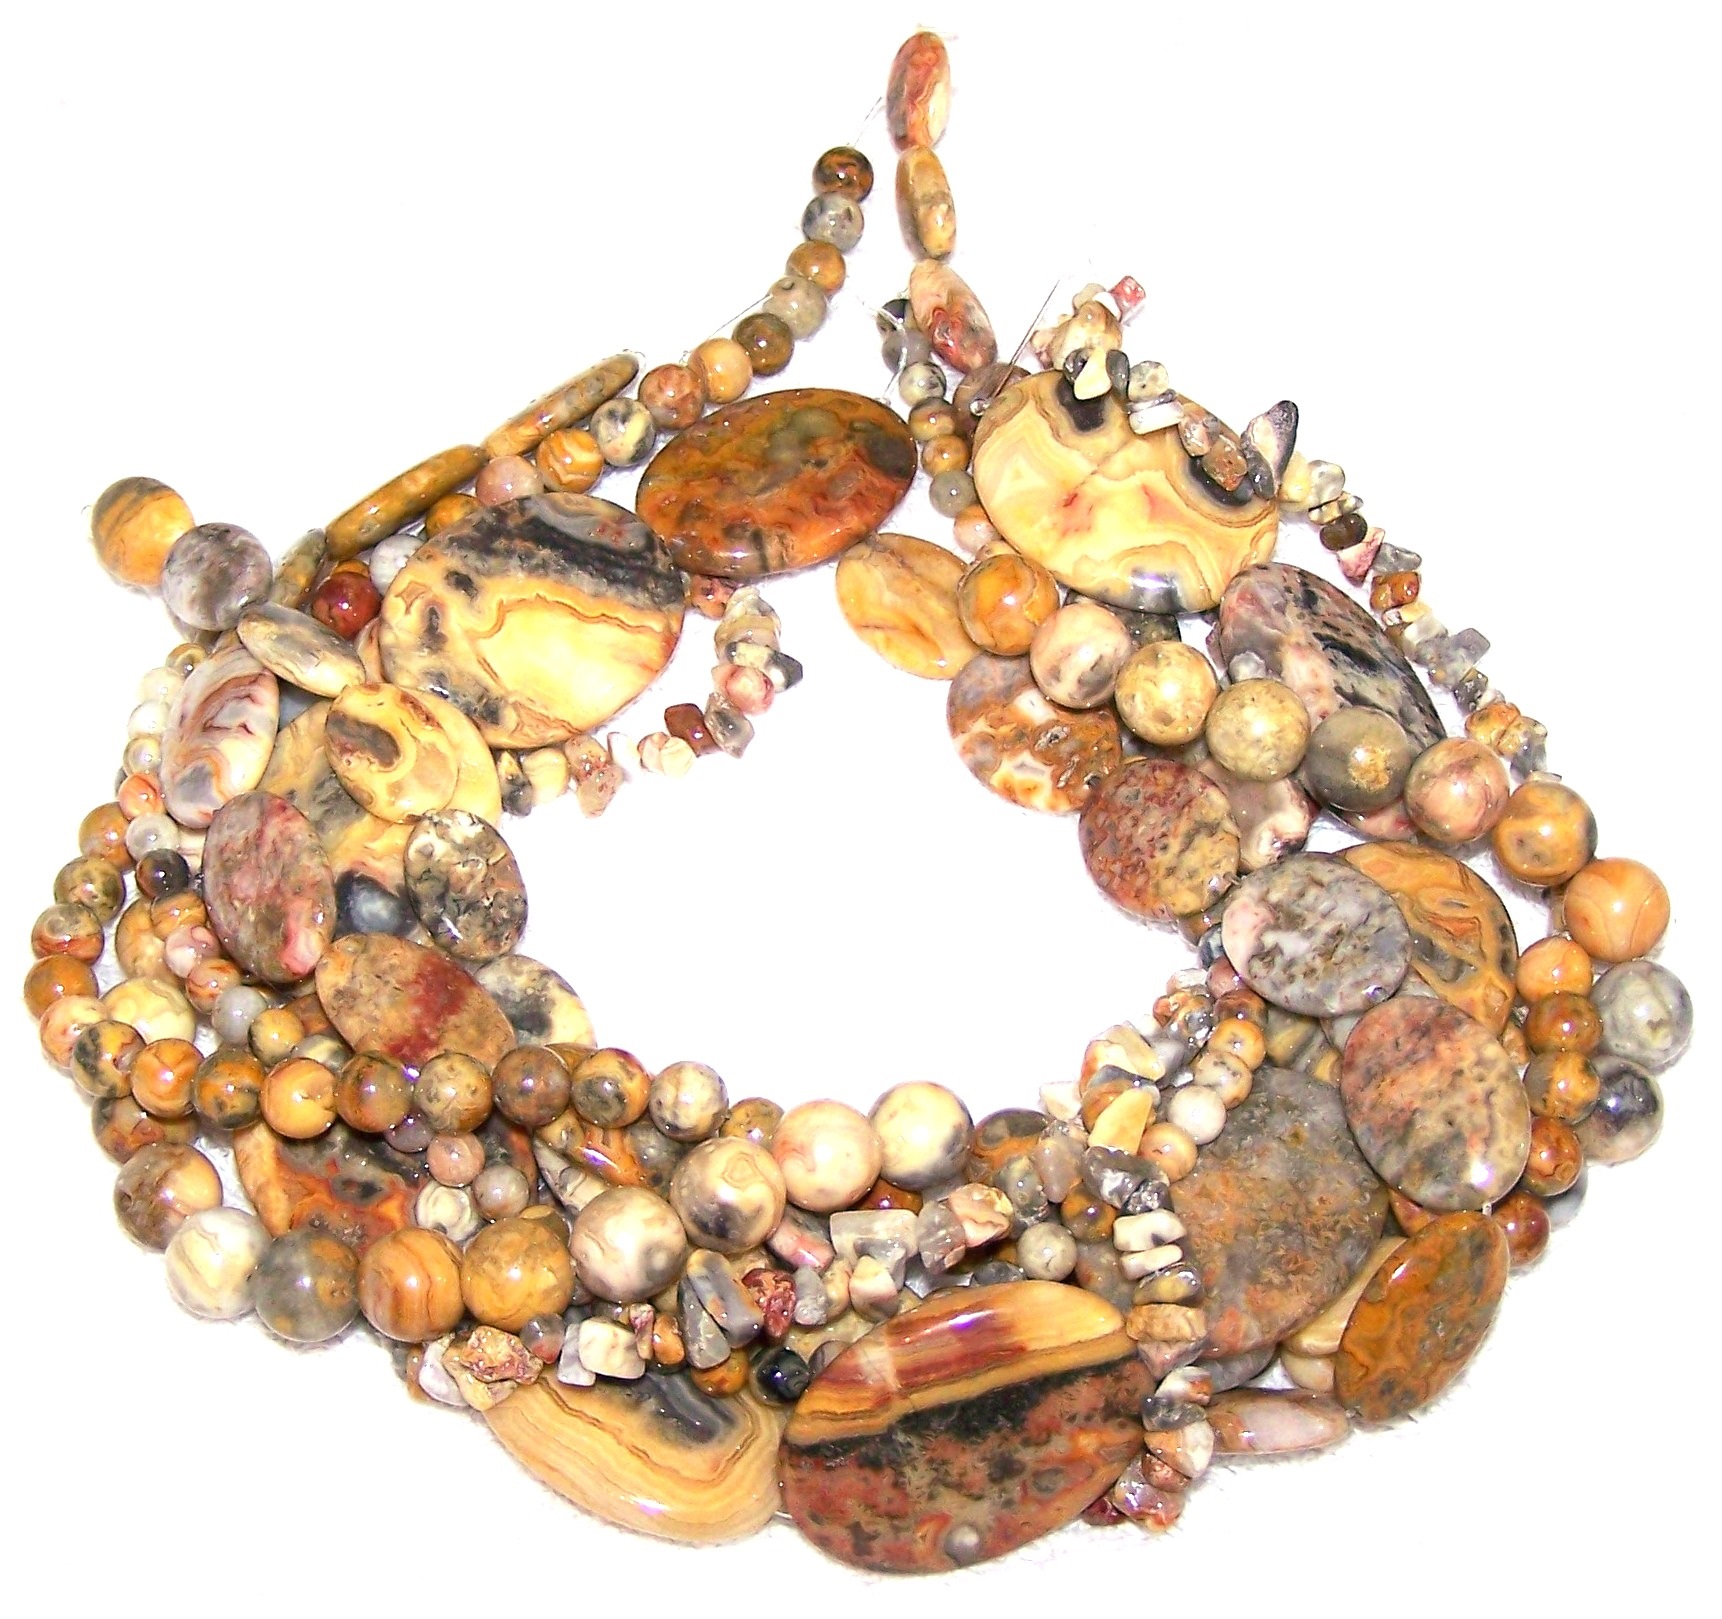 Crazy Lace Agate Deluxe Semiprecious Gemstone Bead Set